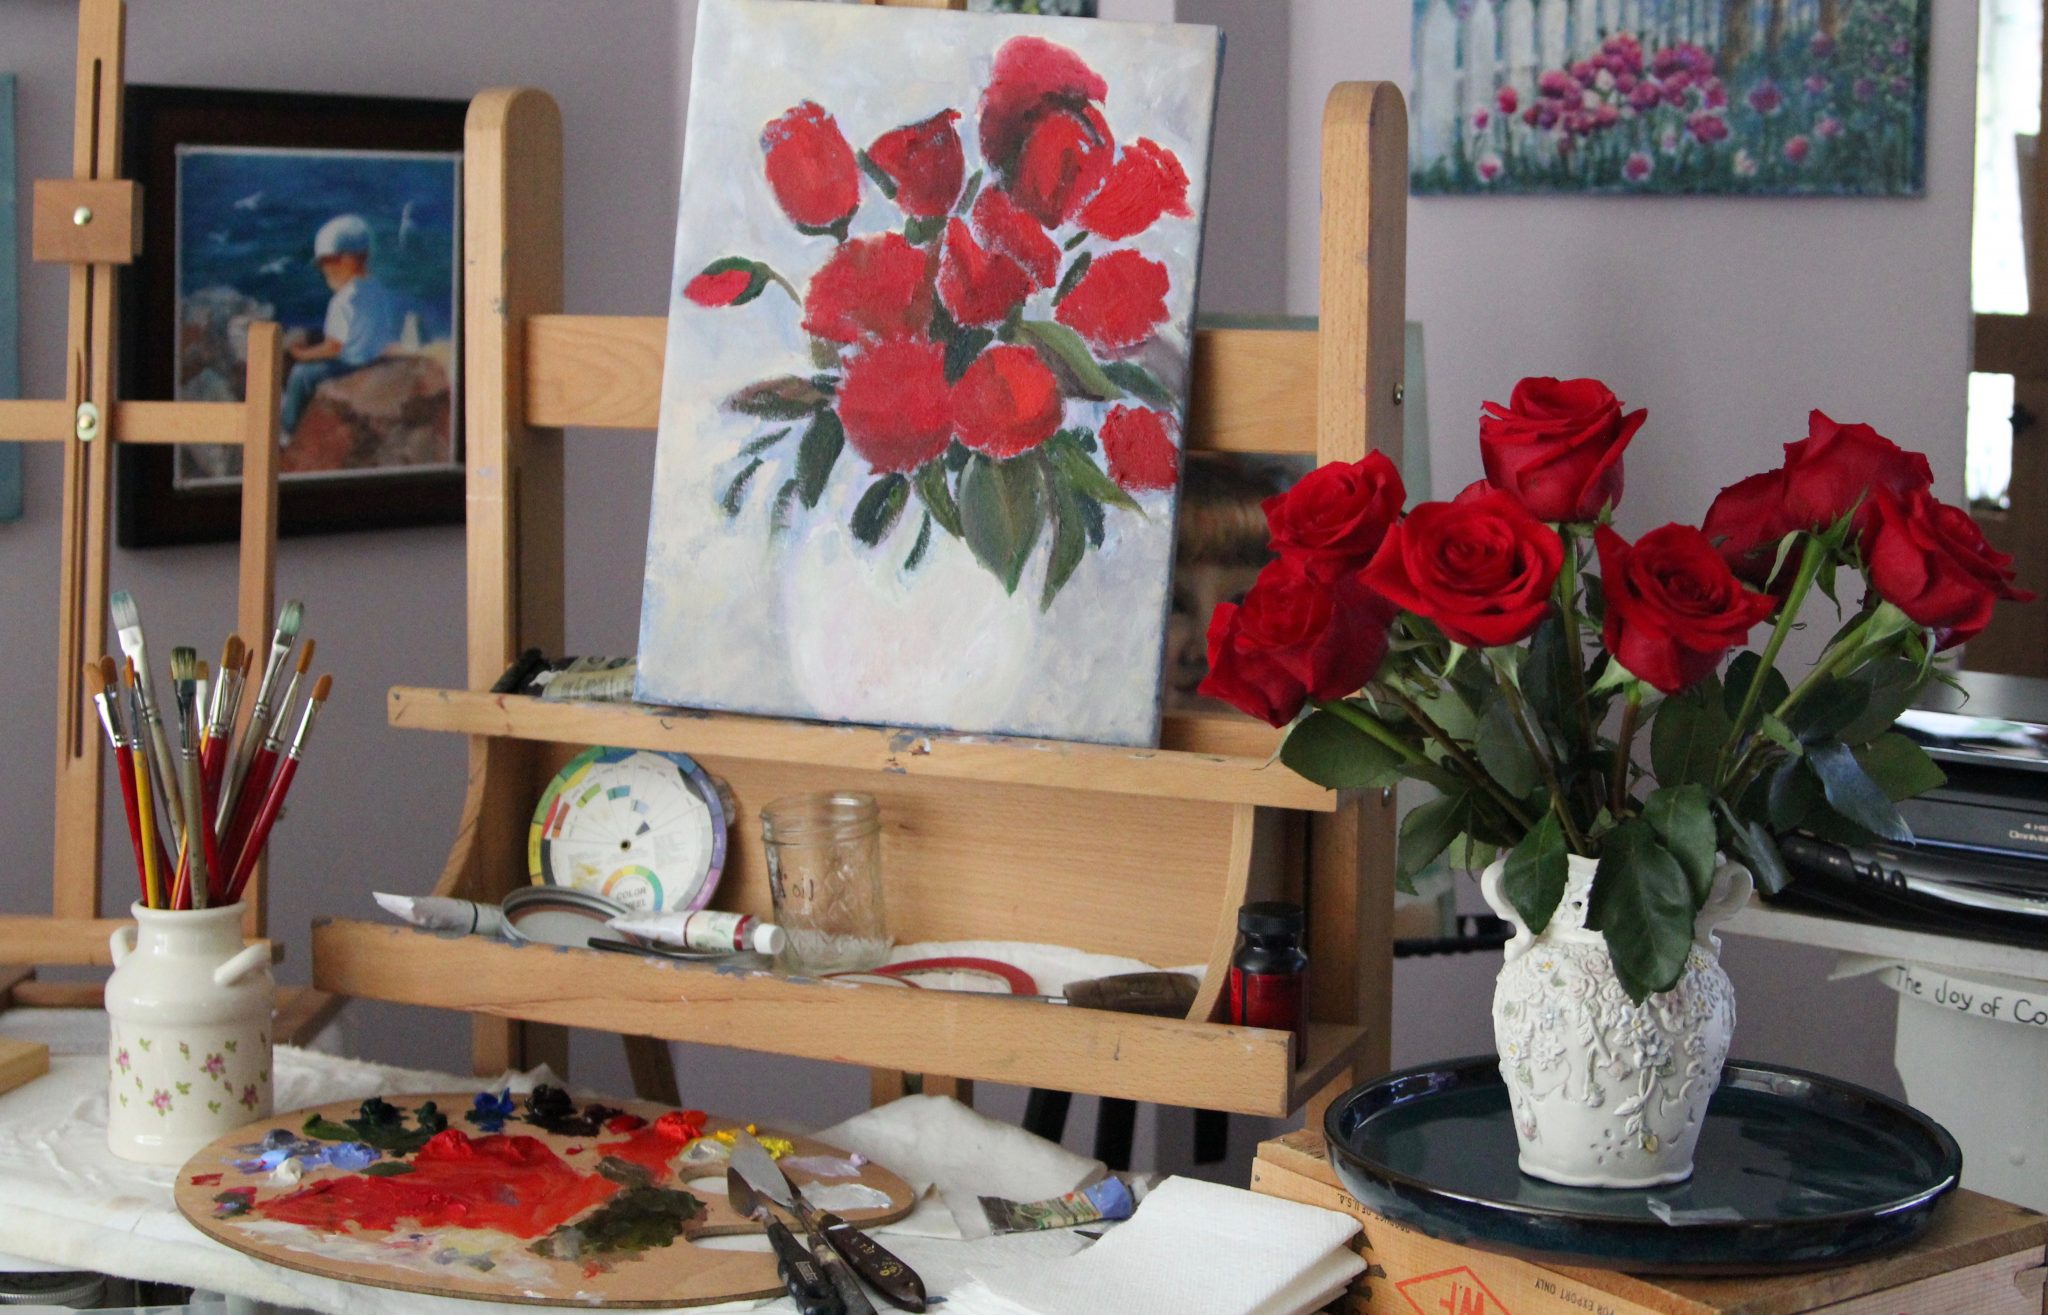 ReducedTheREAL Roses and ROSESAllaPrimaPainting